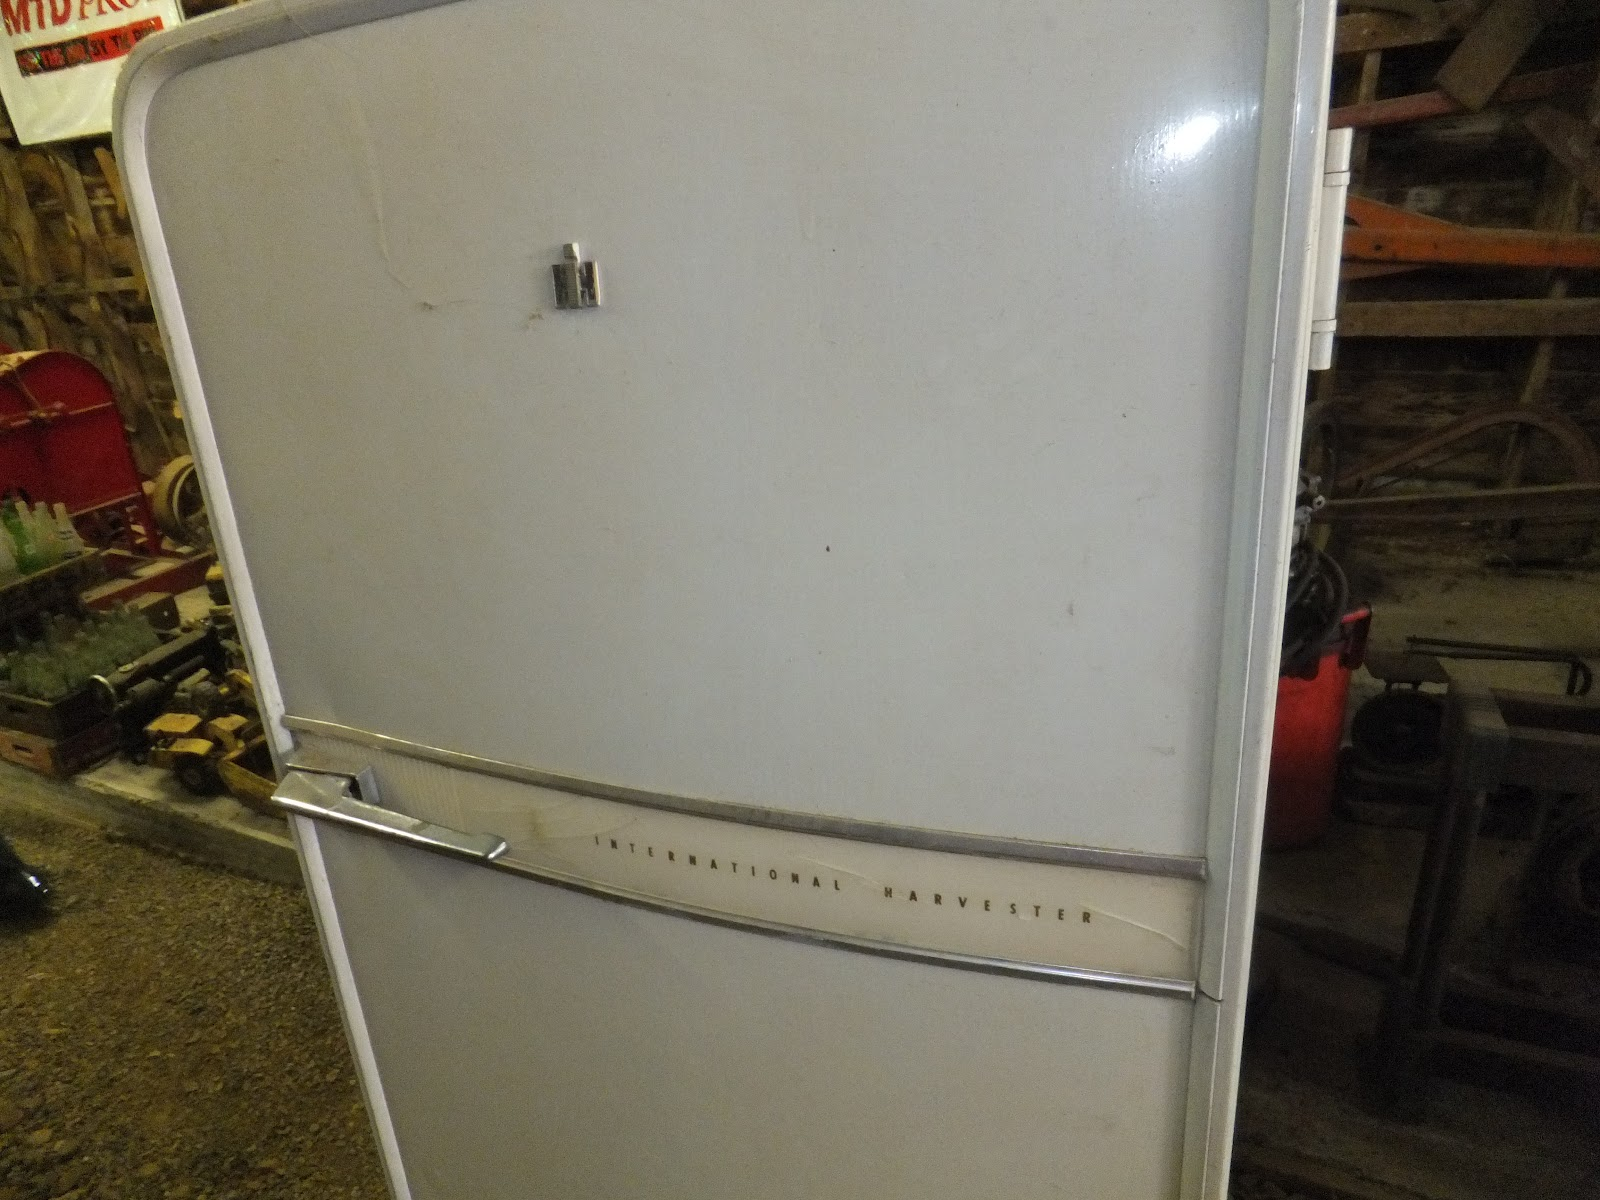 International Harvester Refrigerator : In a pastime paradise treasure unlikely places